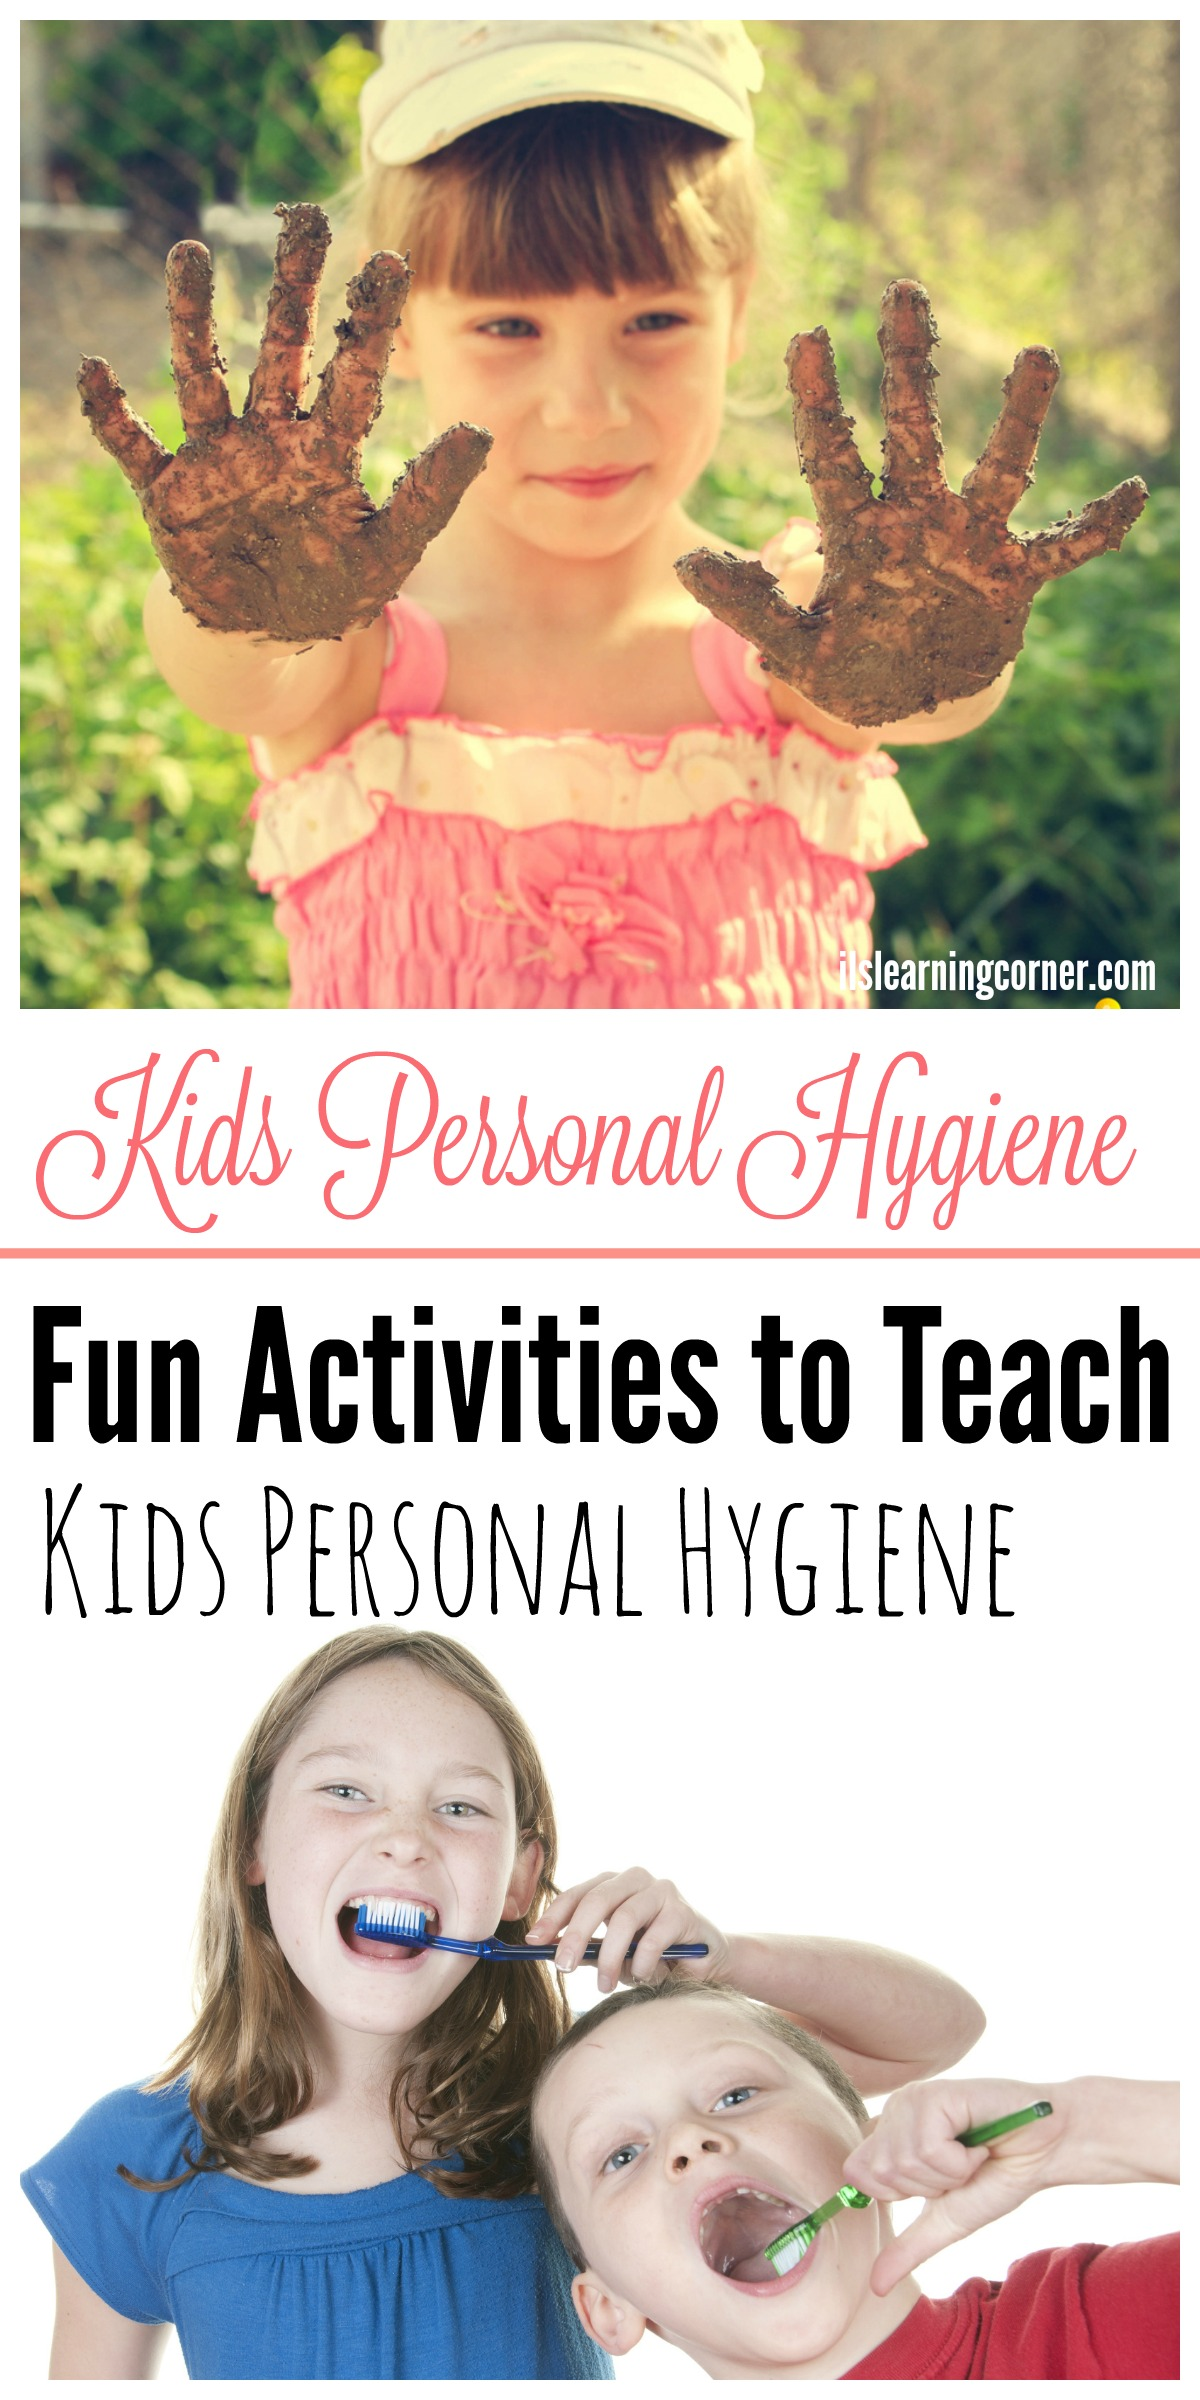 Hygiene Fun Activities To Teach Kids Personal Hygiene